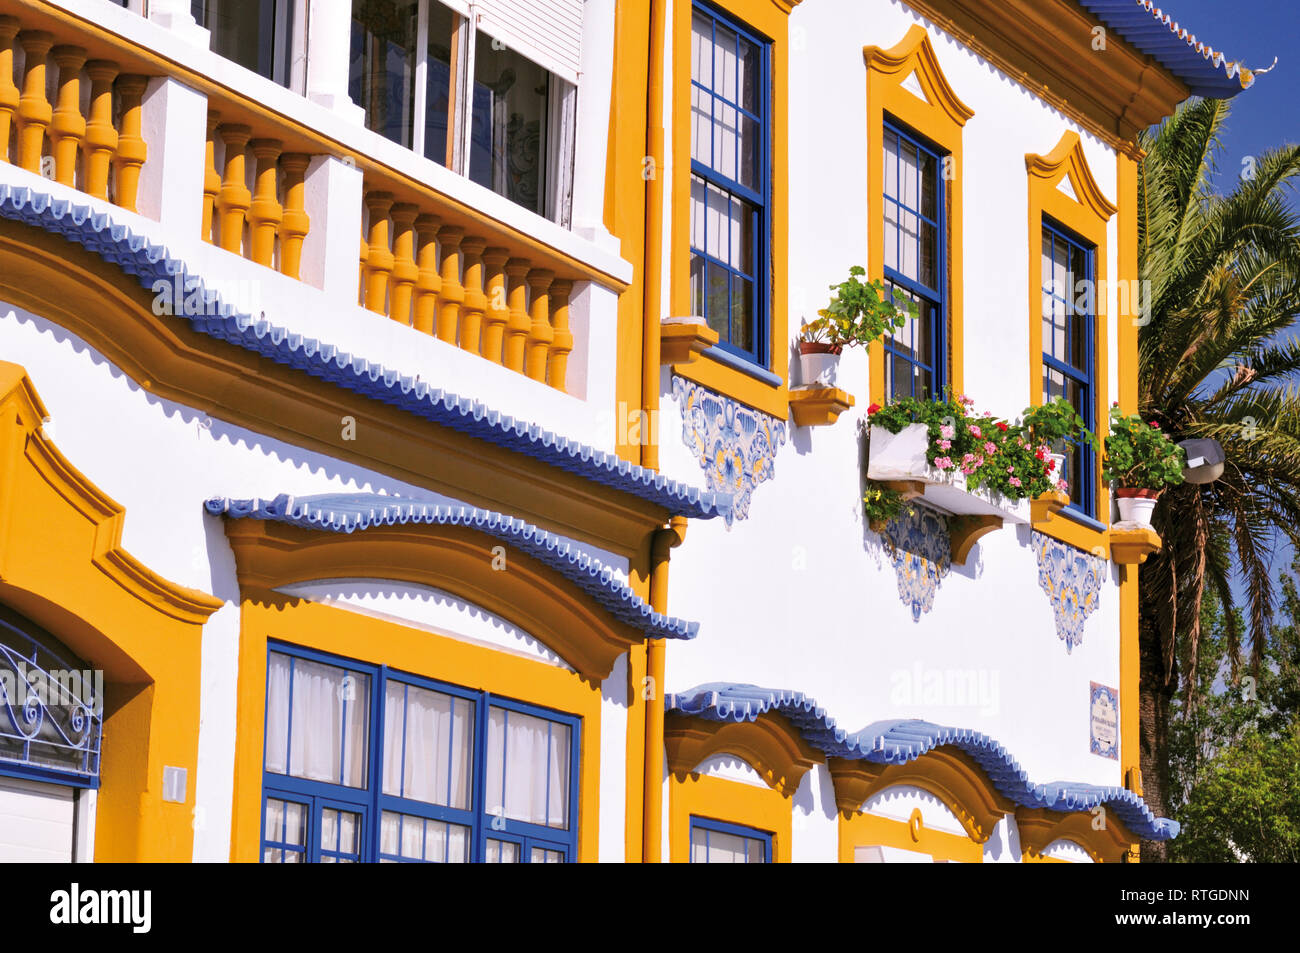 Detail of colorful house facade with yellow and blue windows - Stock Image